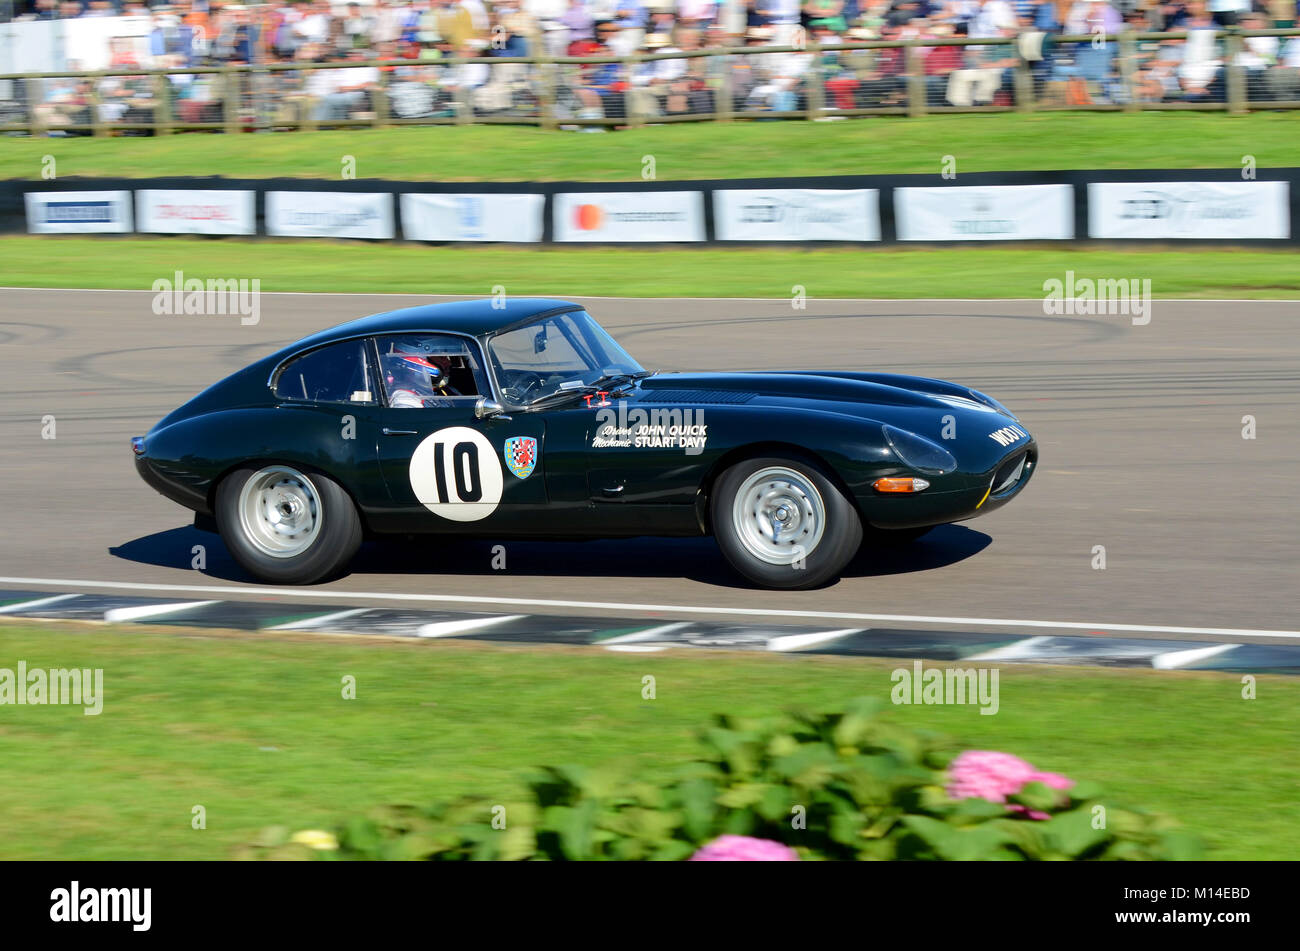 1962 Jaguar E Type owned by Marc Davis driven by Martin O'Connell in the RAC TT Celebration at the Goodwood - Stock Image